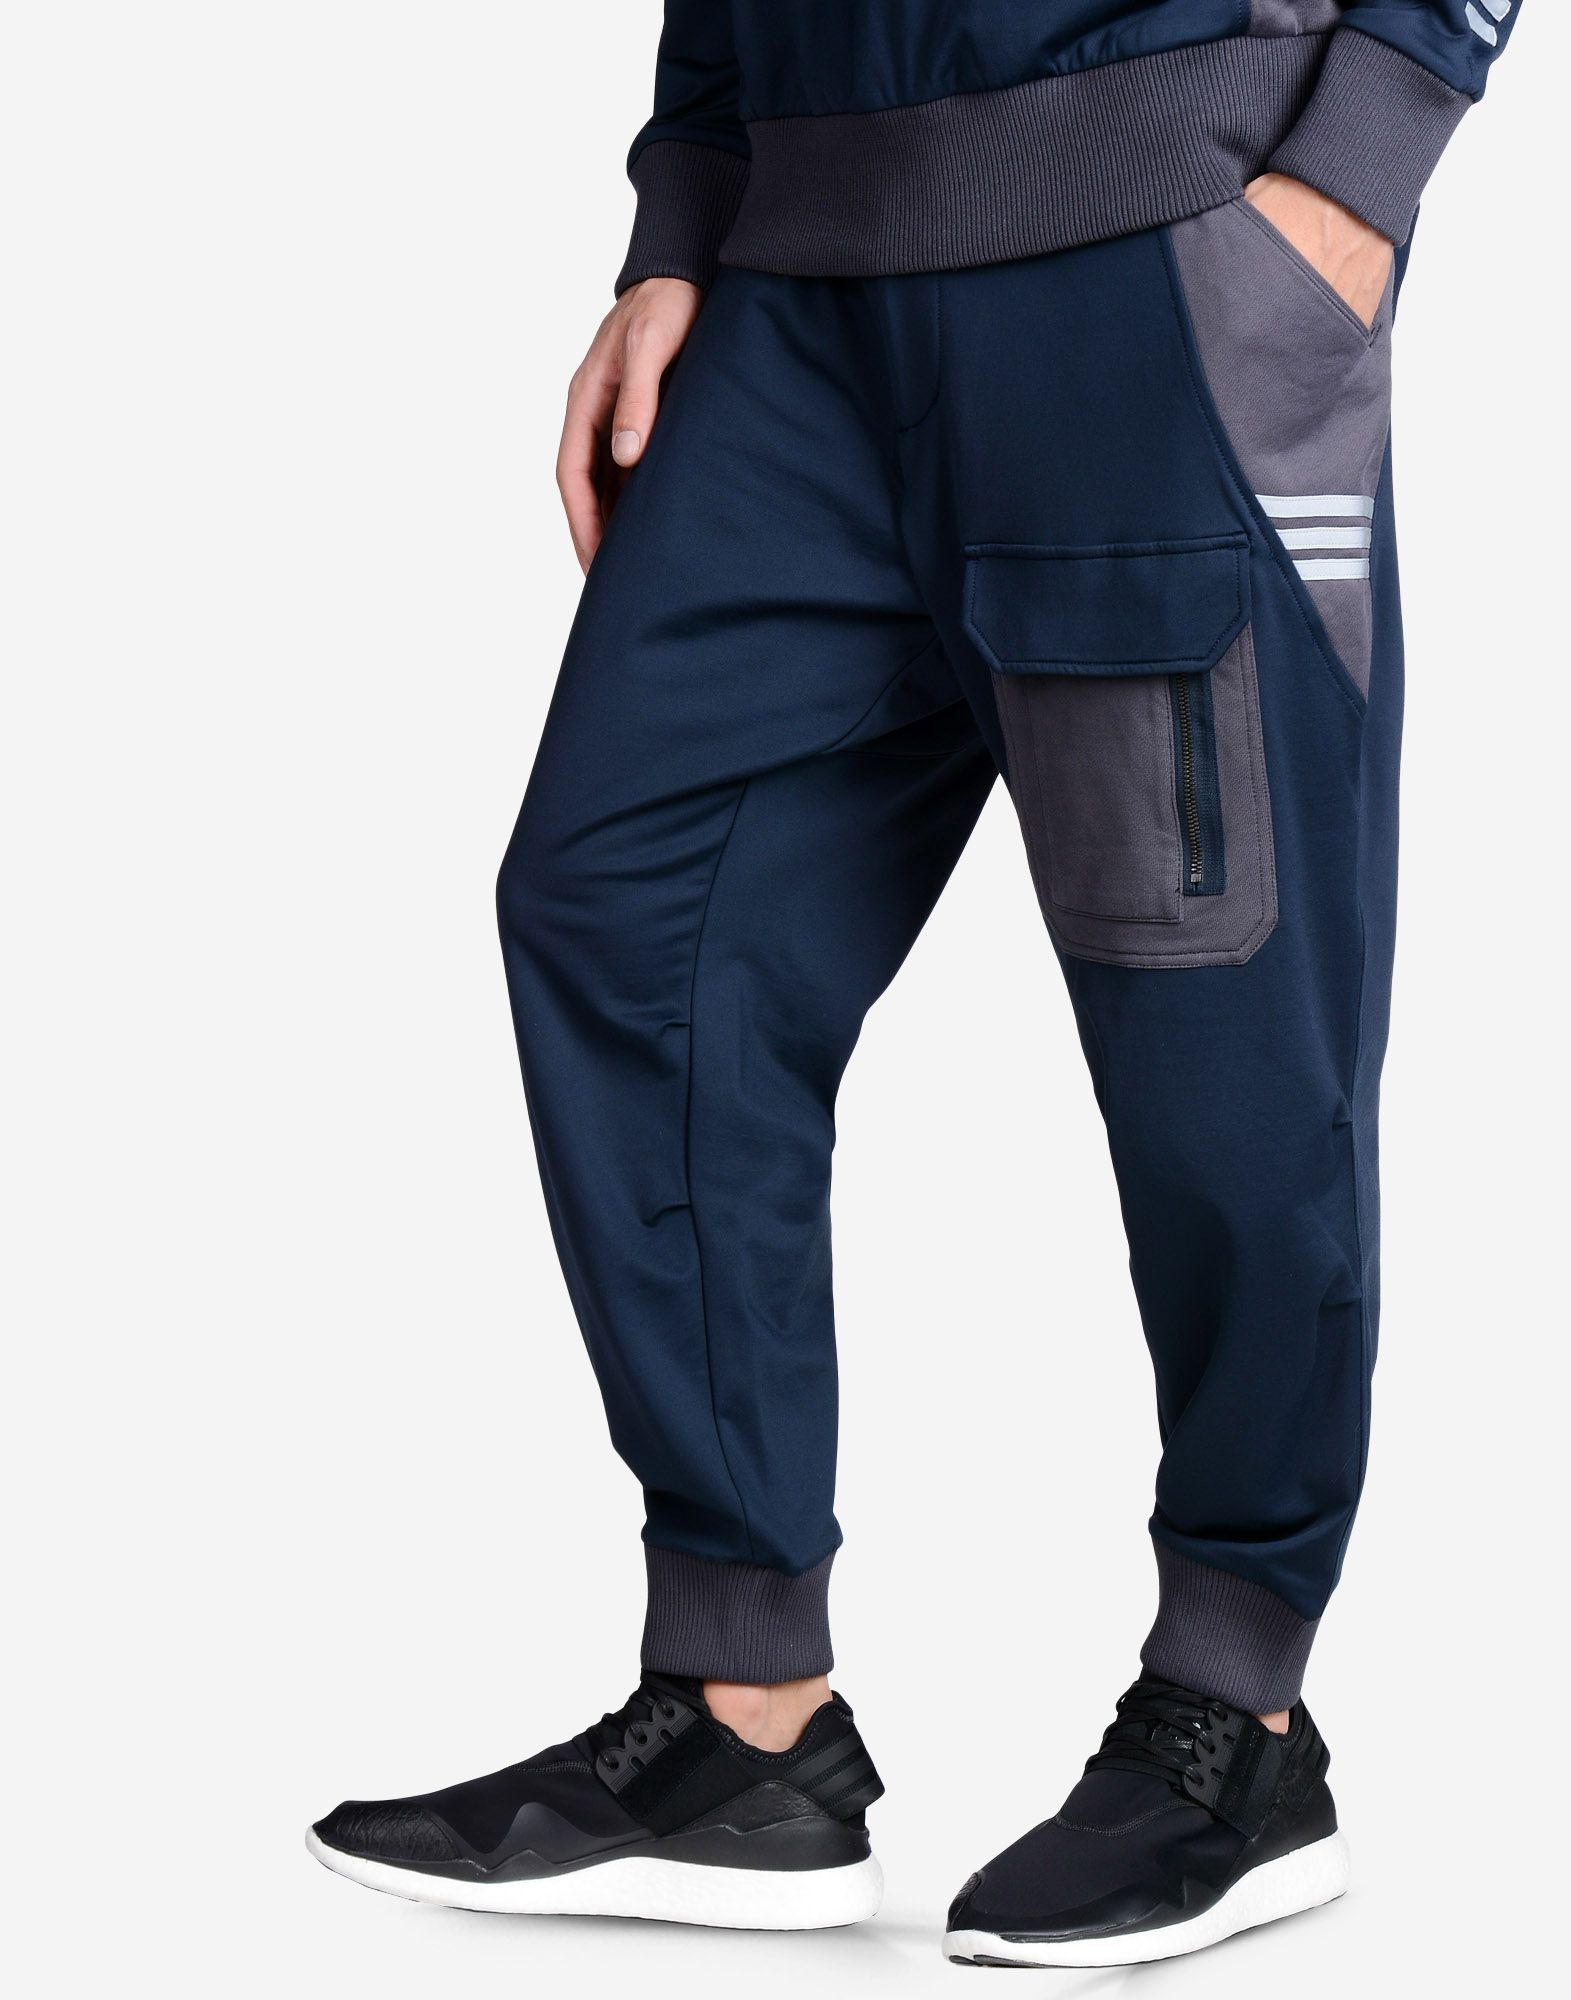 aaa235b2dd4414 Y-3 LUX DRILL TRACK PANT PANTS man Y-3 adidas | Men | Track pants ...